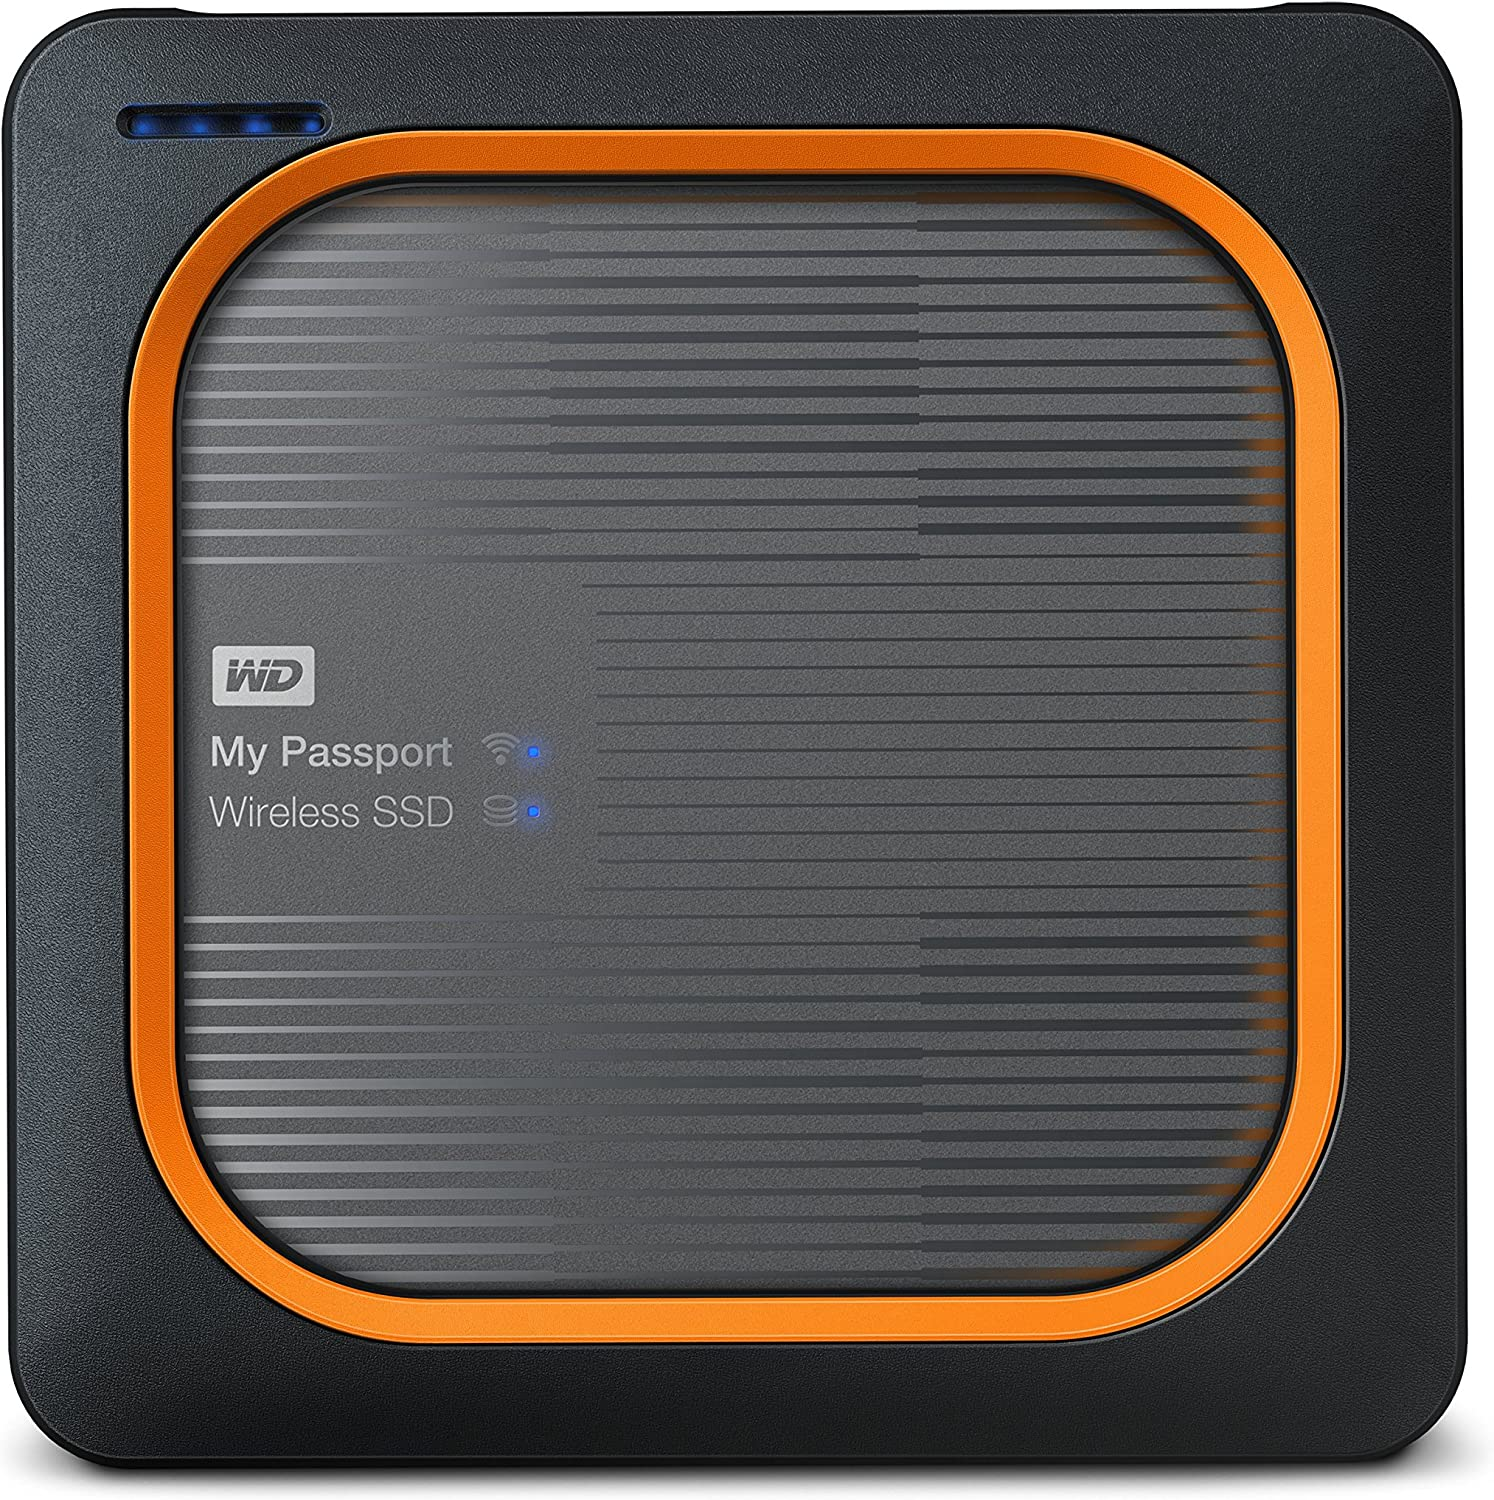 WD 250GB My Passport Wireless SSD External Portable Drive, WiFi USB 3.0, Up to 390 MB/s - WDBAMJ2500AGY-NESN